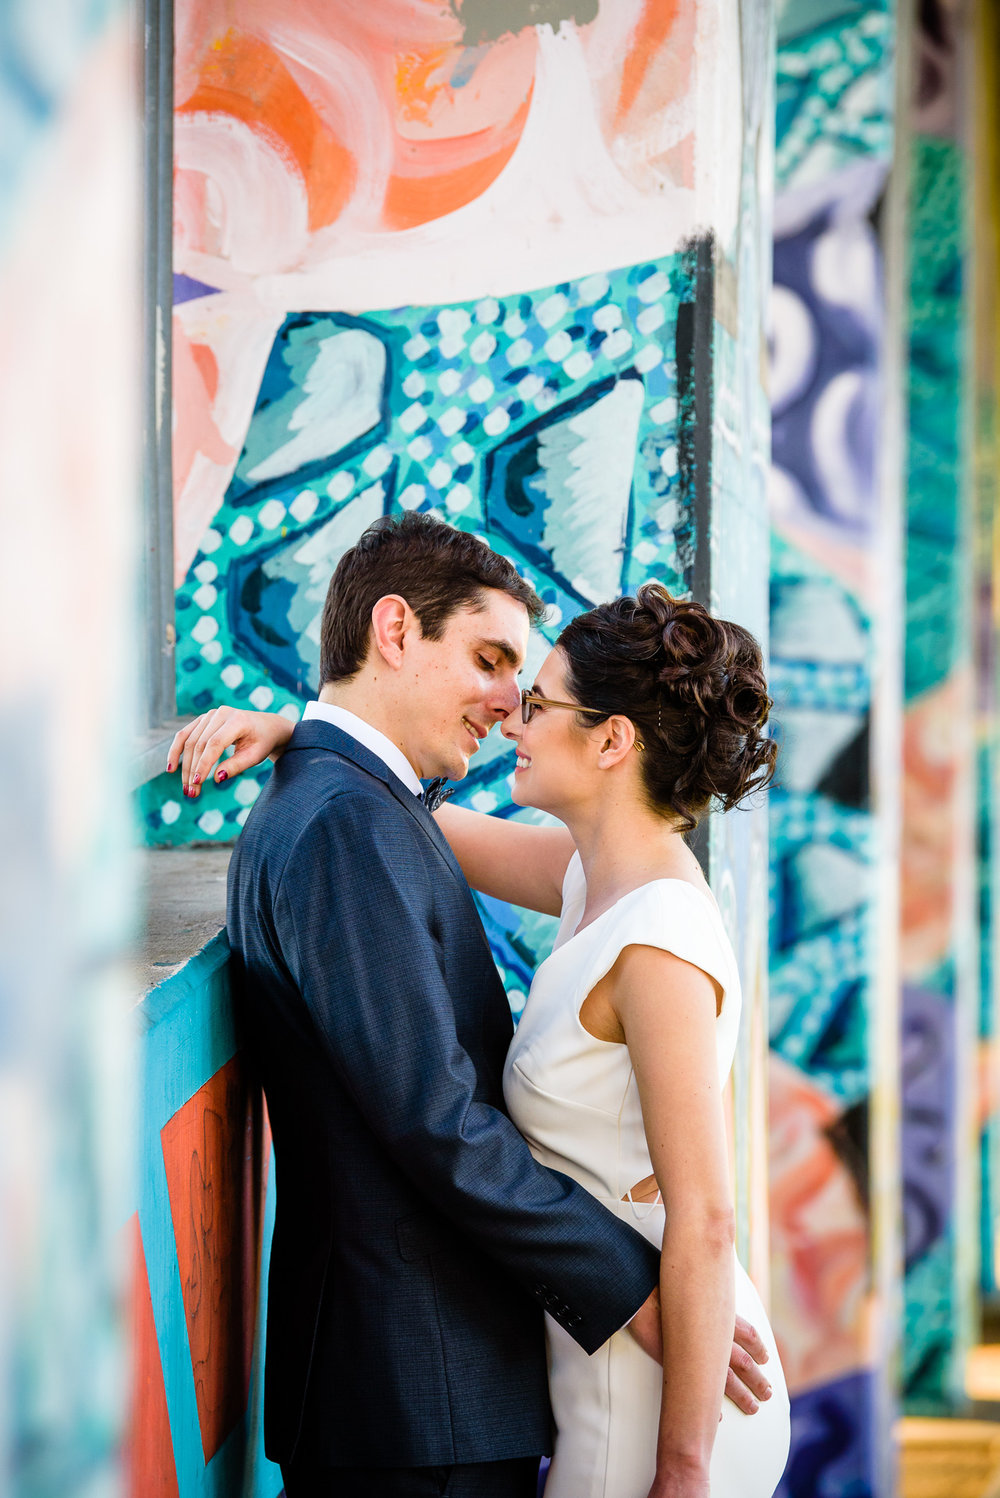 12.29.17 - Michelle and Tommaso Wedding - San Diego Courthouse -  Paul Douda Photography - 020.jpg